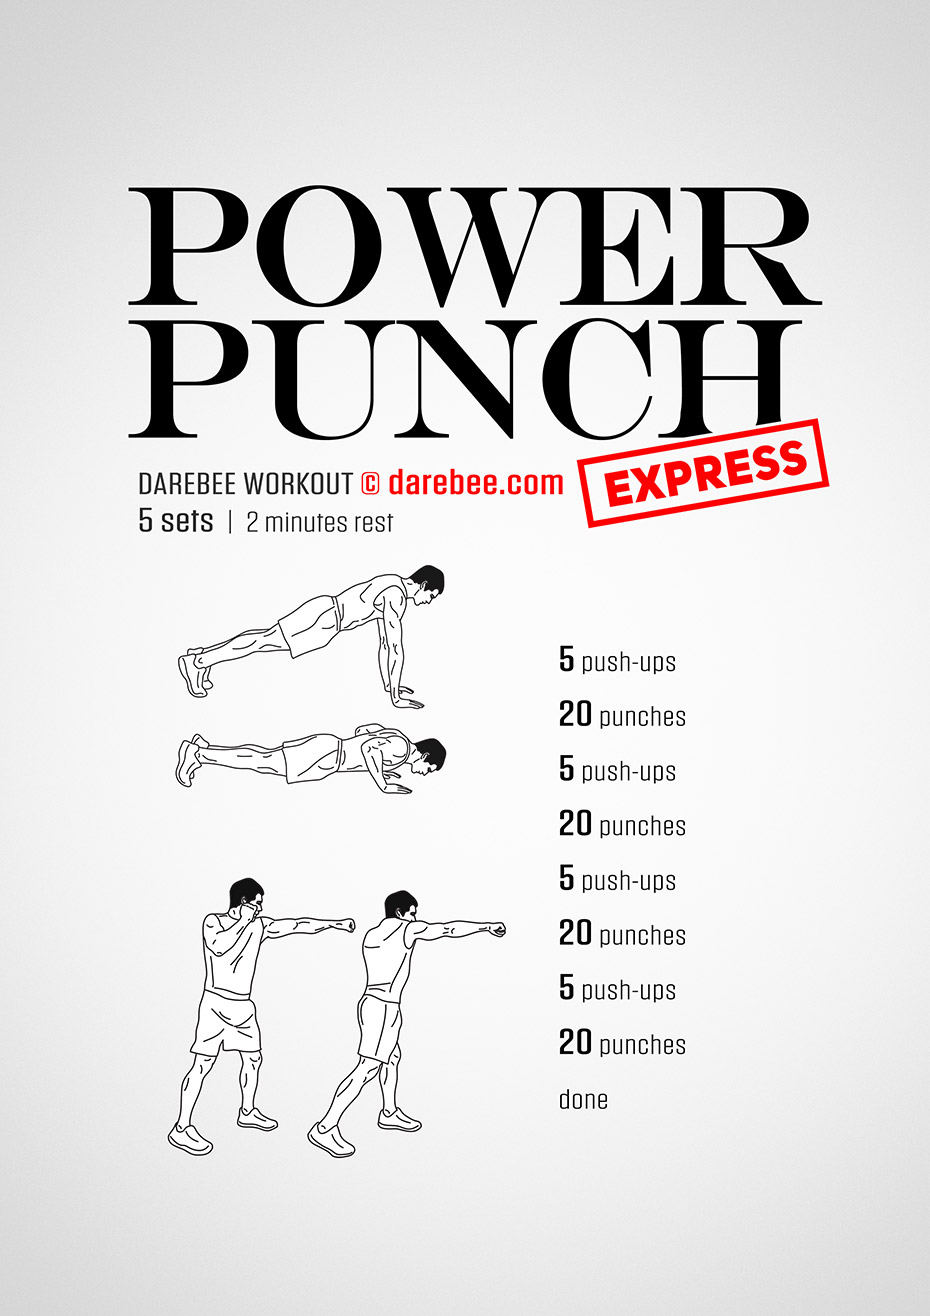 how to get better cardio and punching power